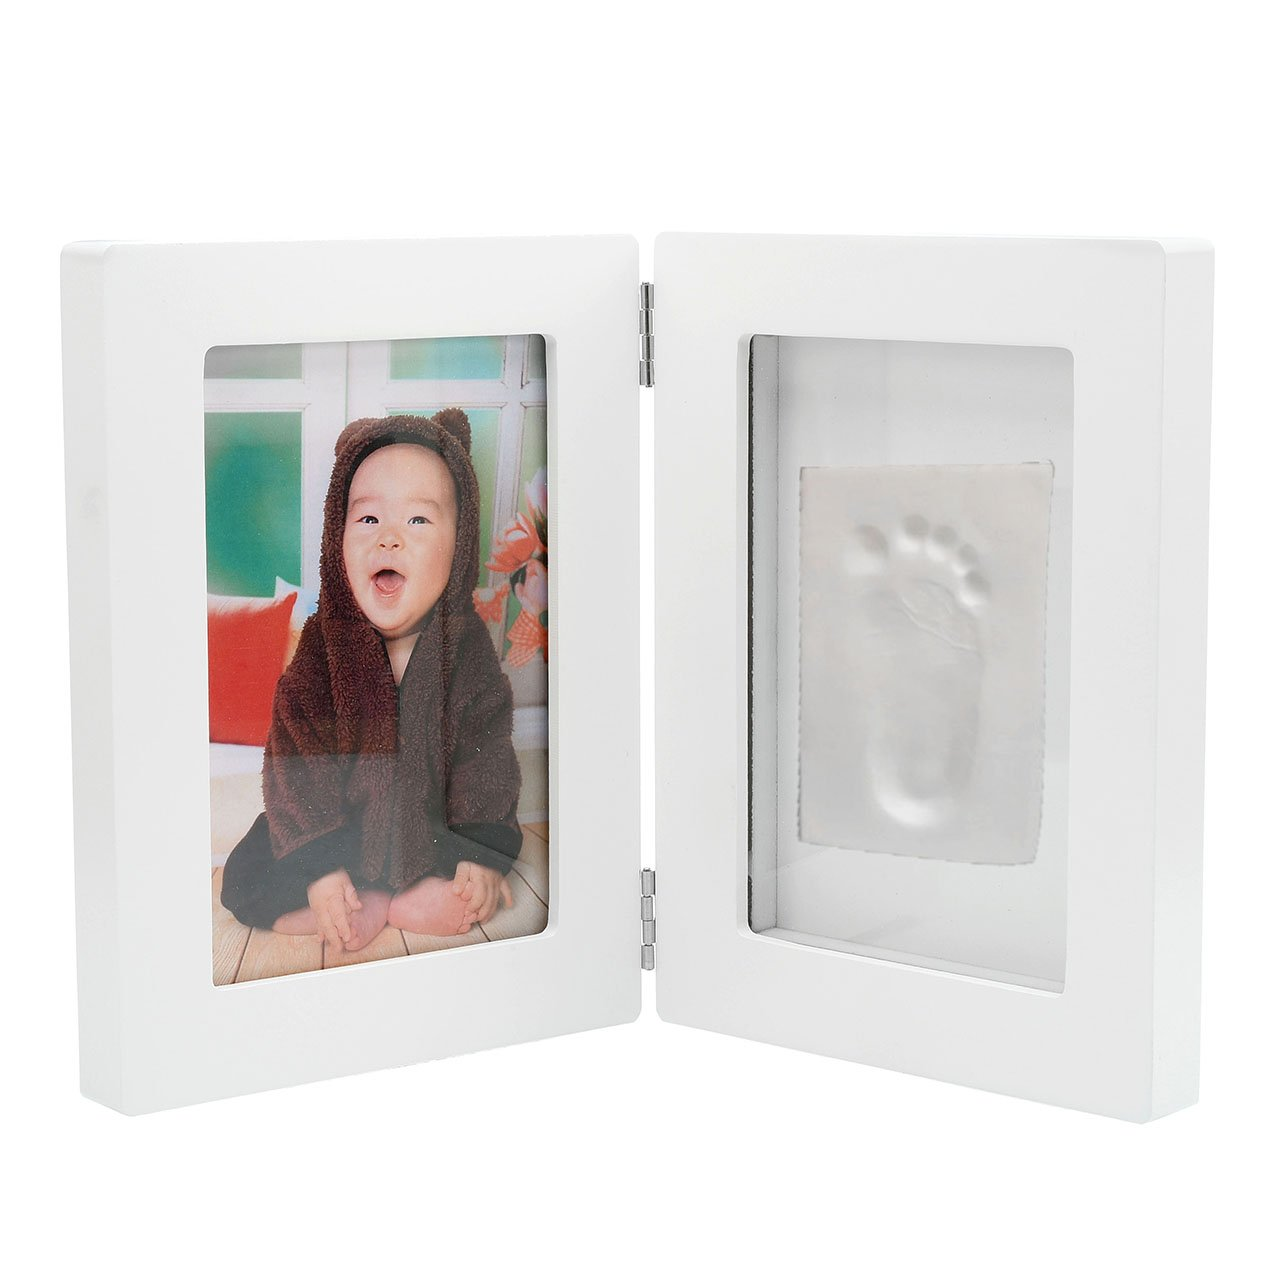 Mogoko Newborn Baby Hand Print Or Footprint Photo Frame Kit - Baby Shower Gifts for Registry, Memorable Keepsakes Decorations, Christening Gift Toddlers Birthday Presents (8.2''(L) 6.2''(W) 2.3''(H))